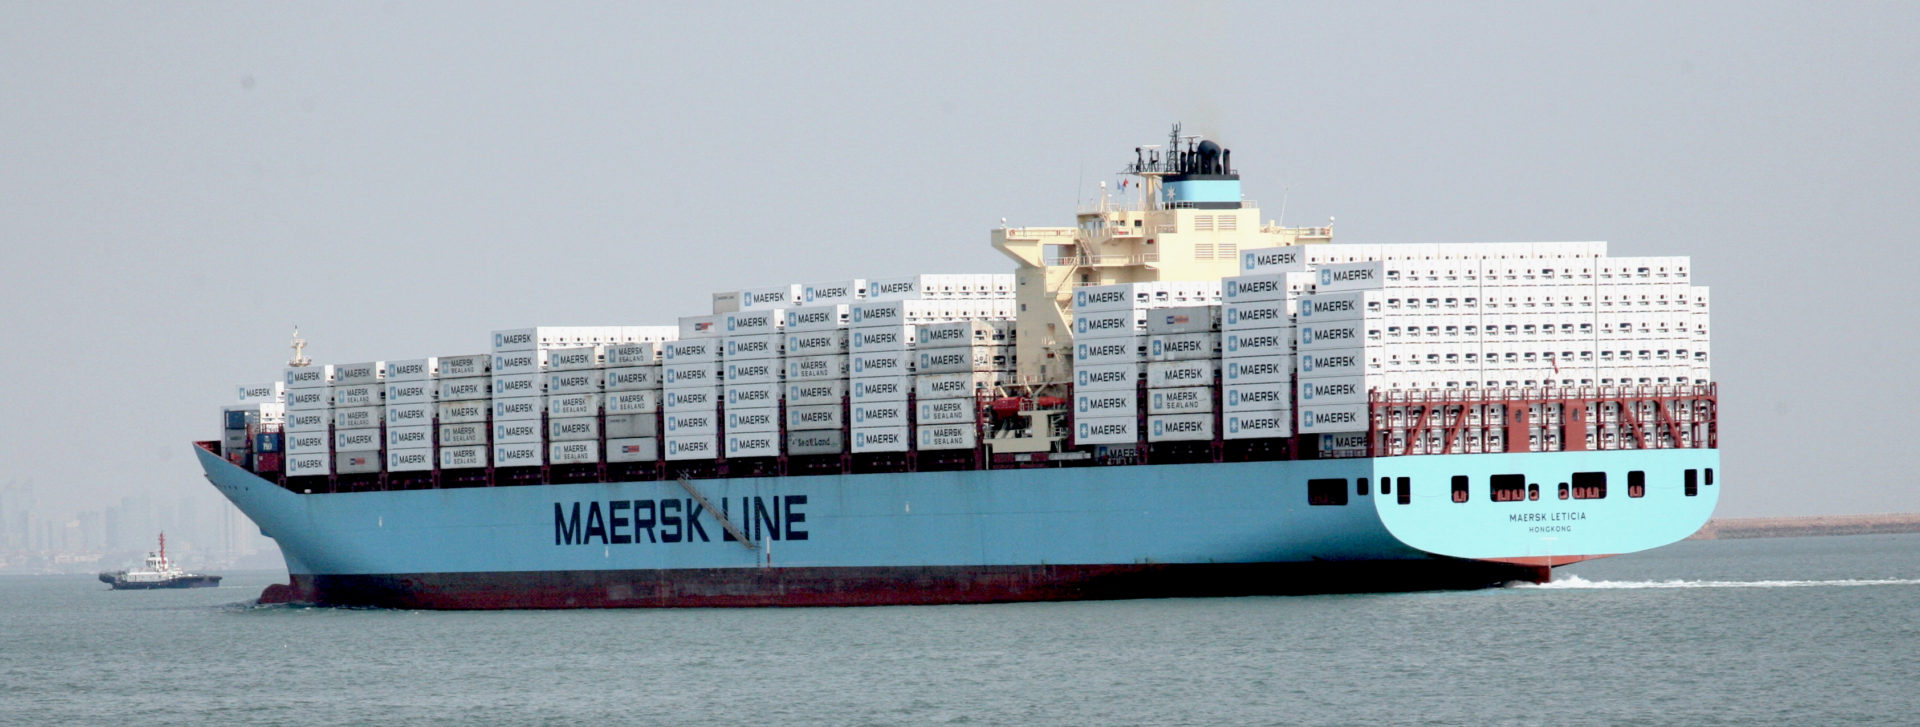 Maersk Sells Oil Division, Focusing on Shipping